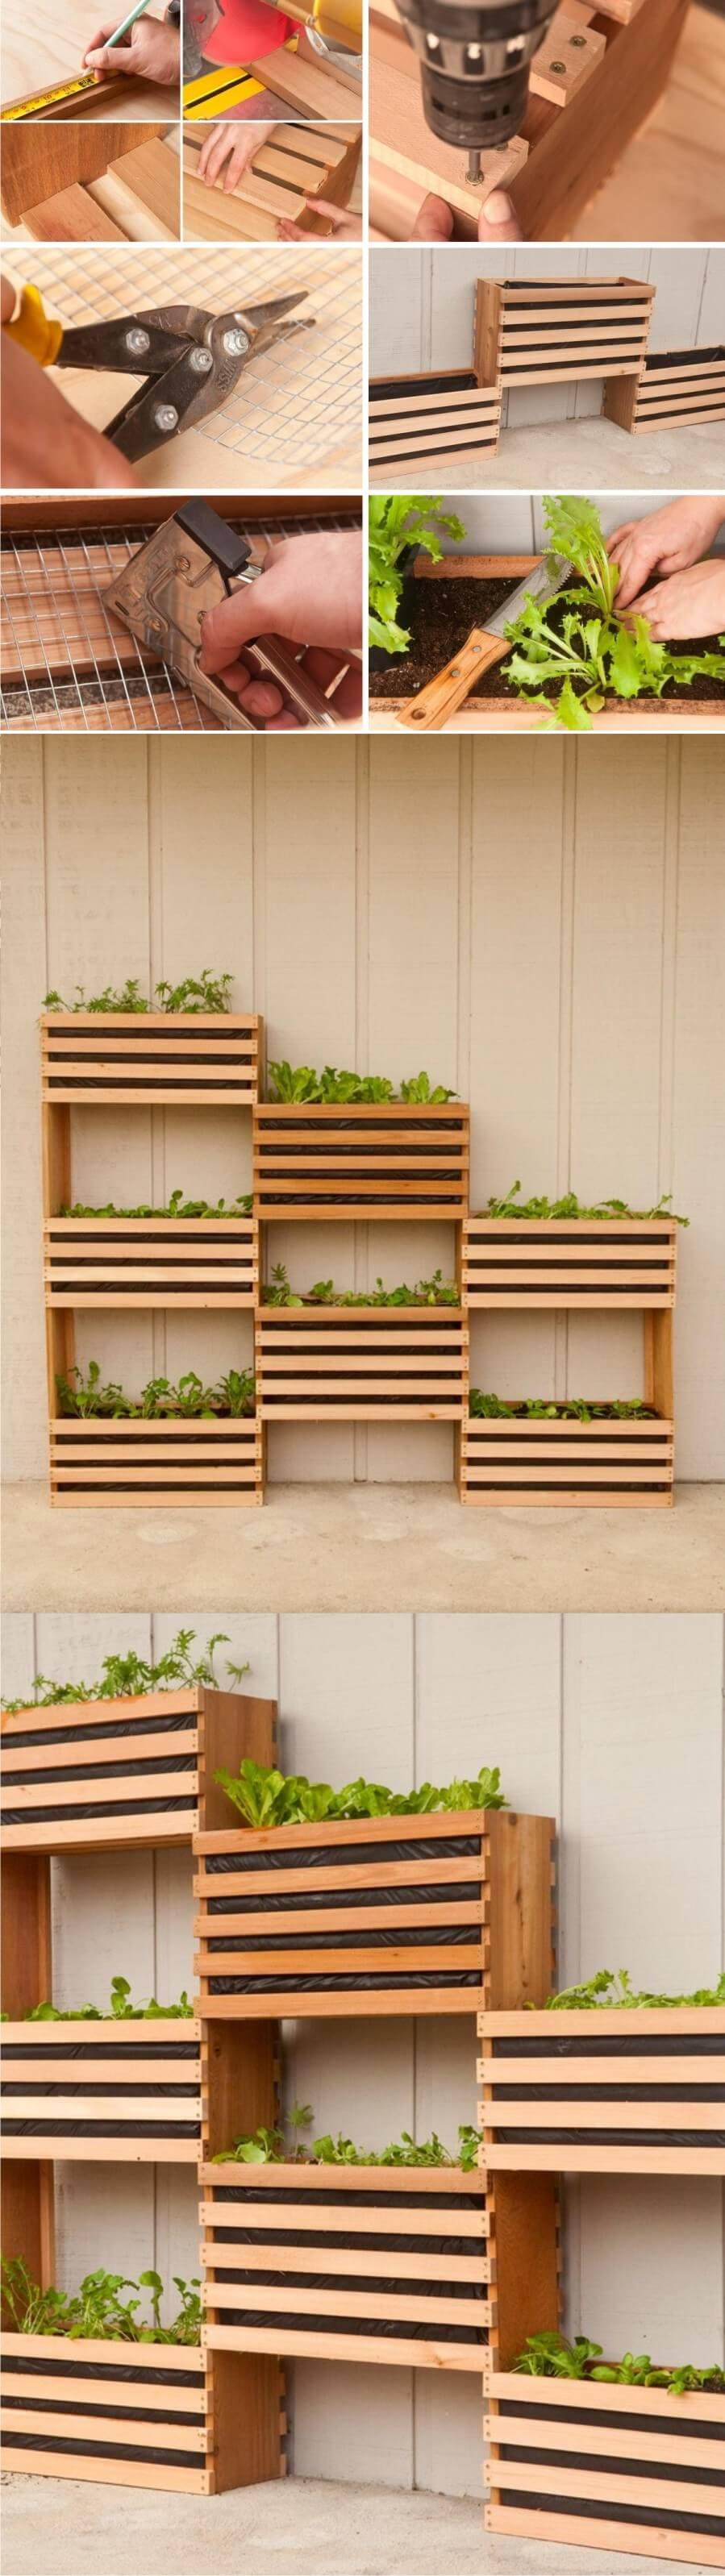 33 Best Built-In Planter Ideas and Designs for 2018